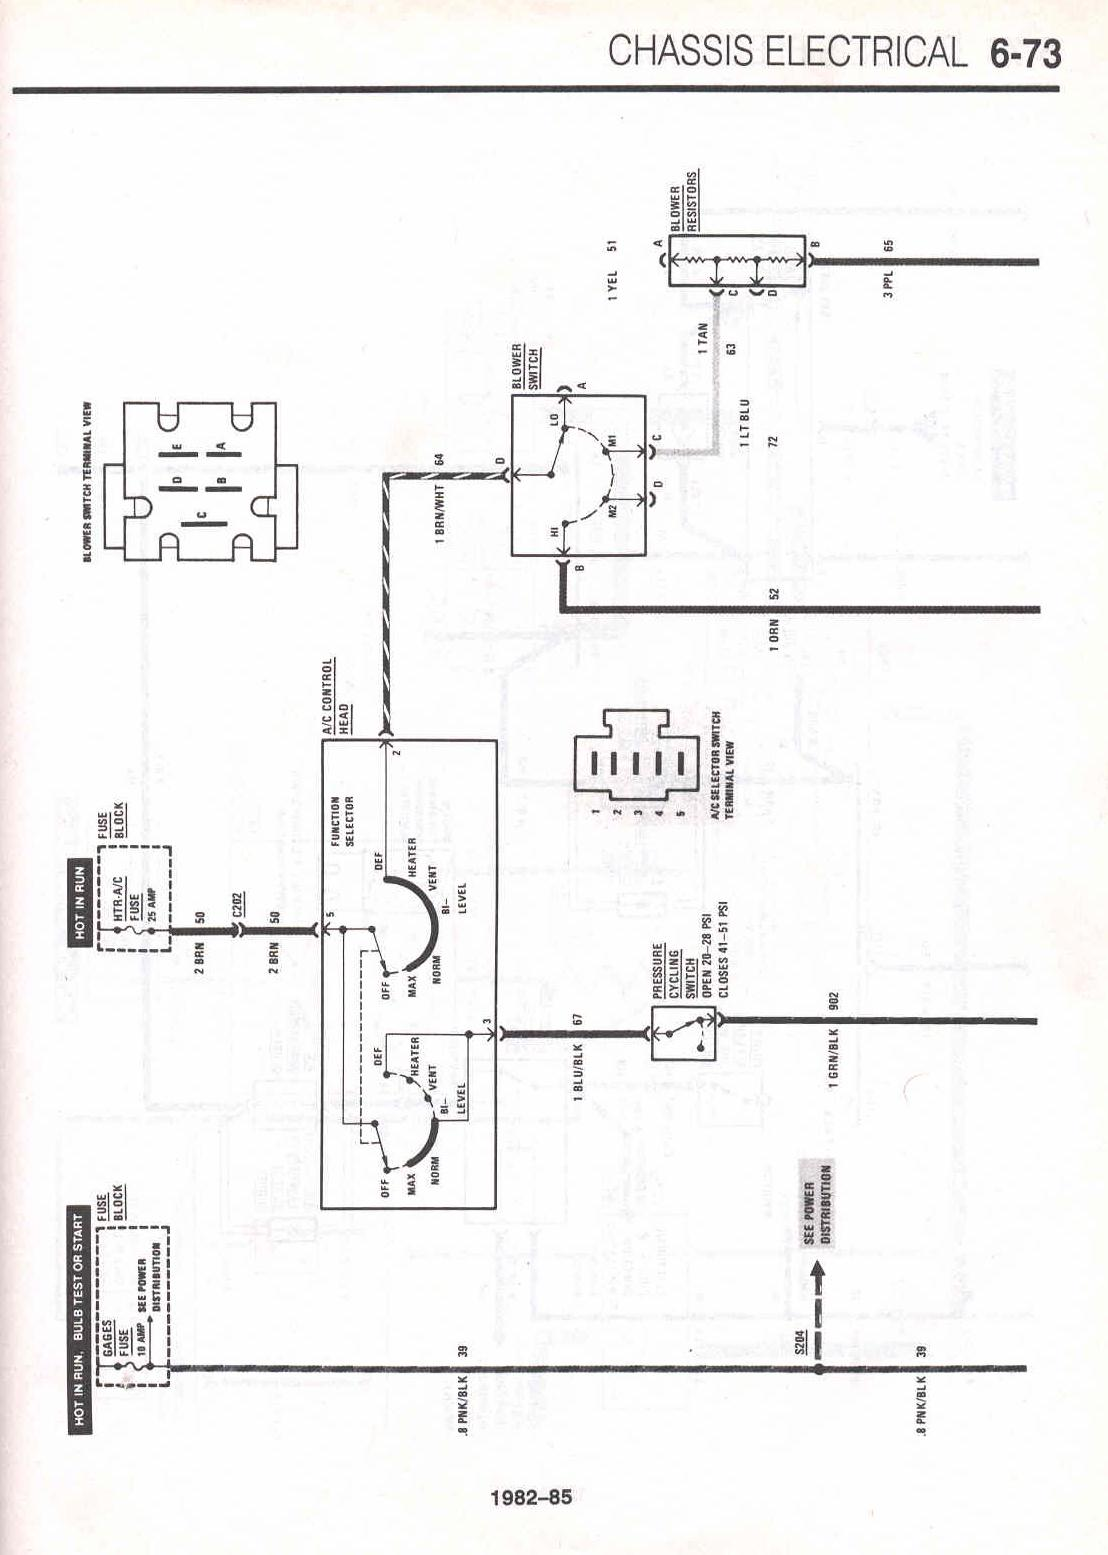 92 Camaro Console Wiring Diagram, 92, Get Free Image About